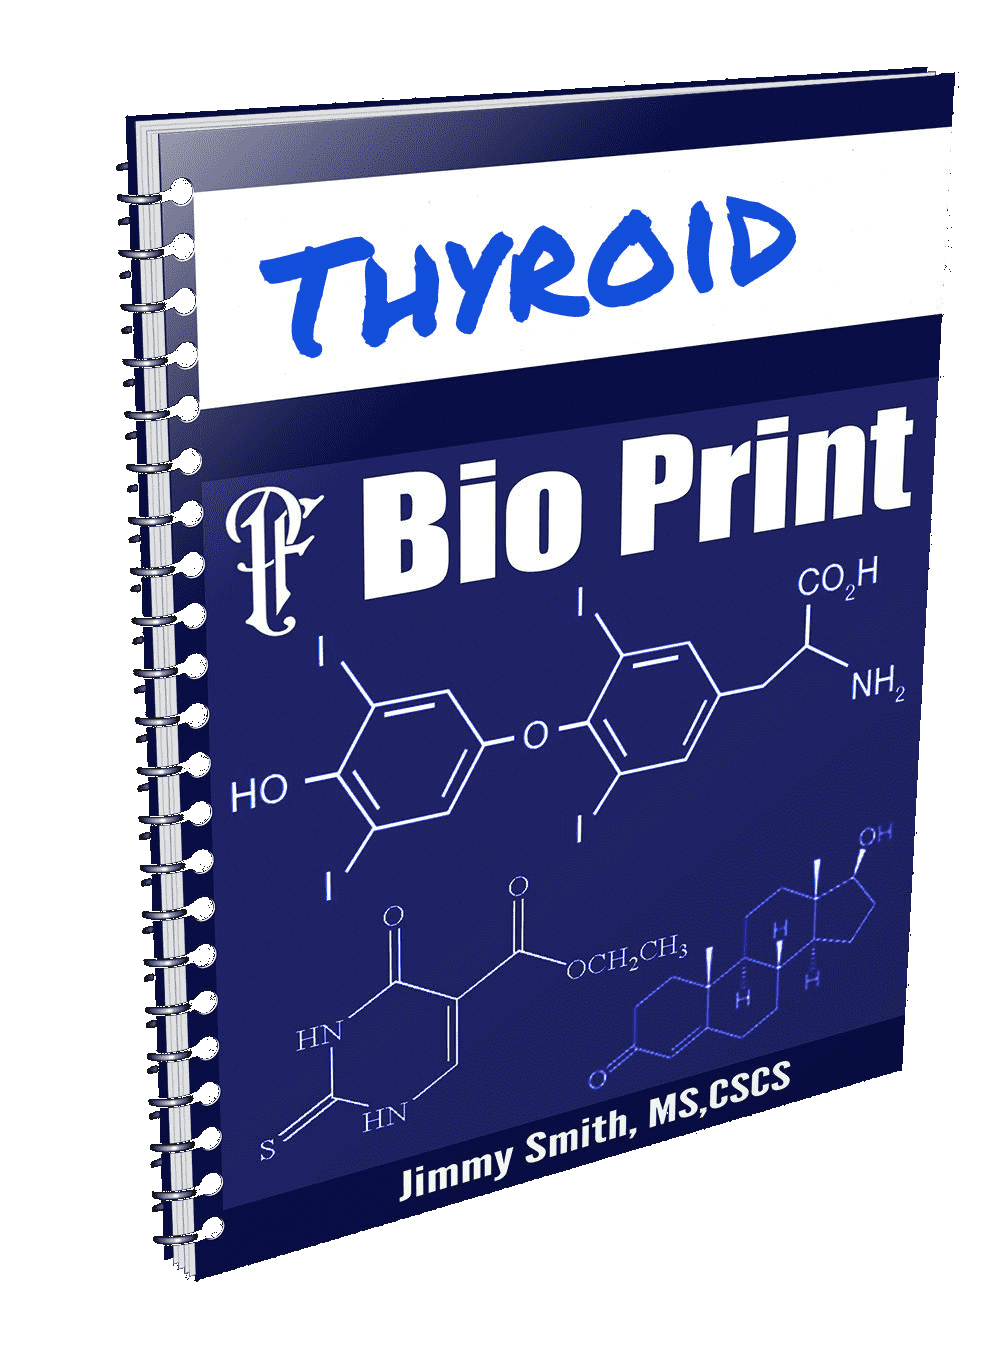 Thyroid BioPrint - Physique Formula